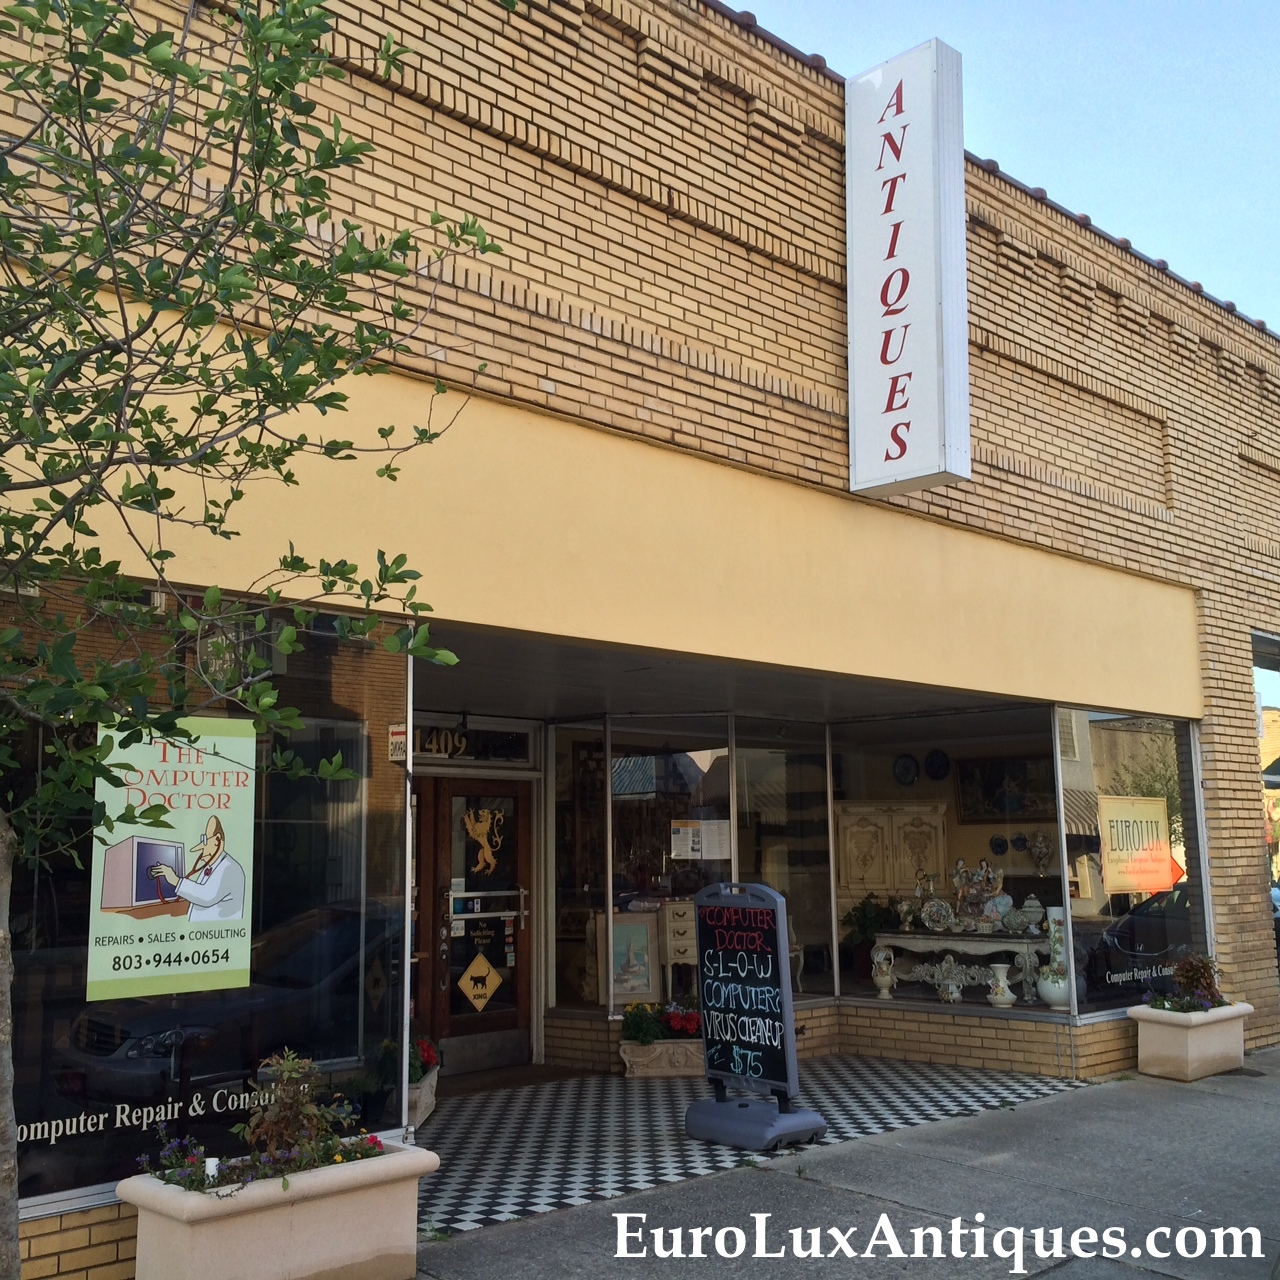 EuroLux Antiques on Newberry Main Street